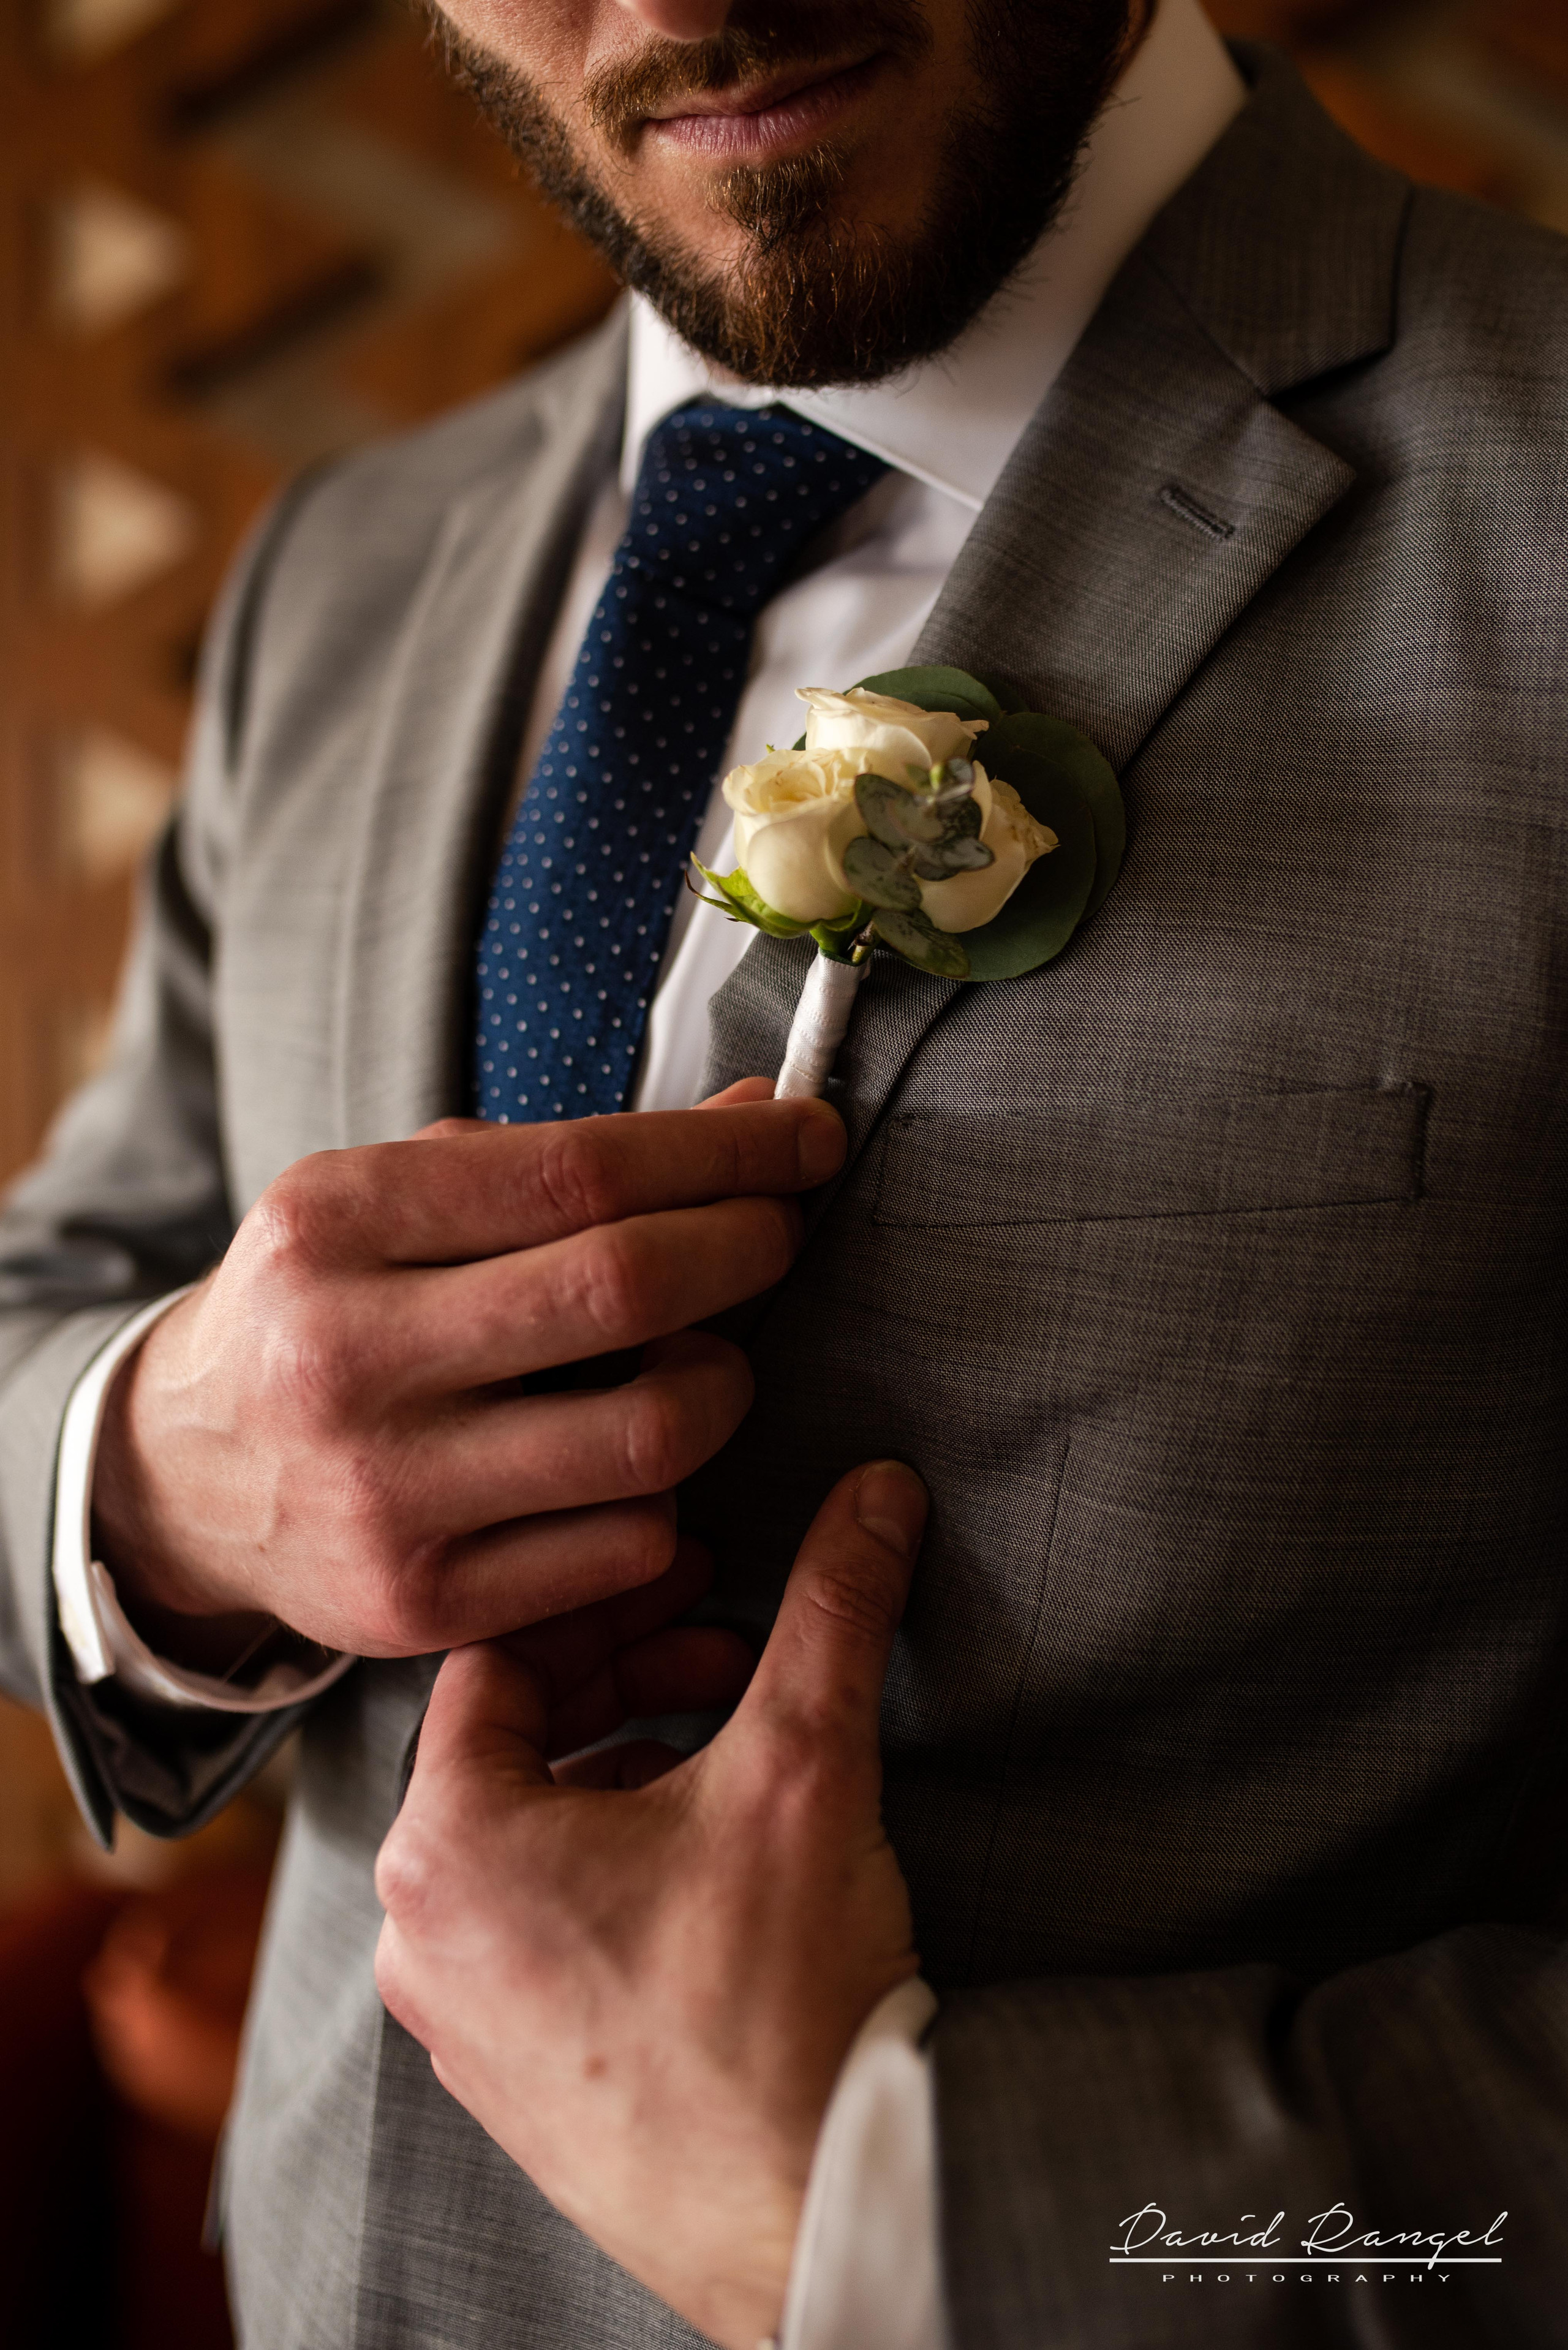 groom+suit+flower+getting+ready